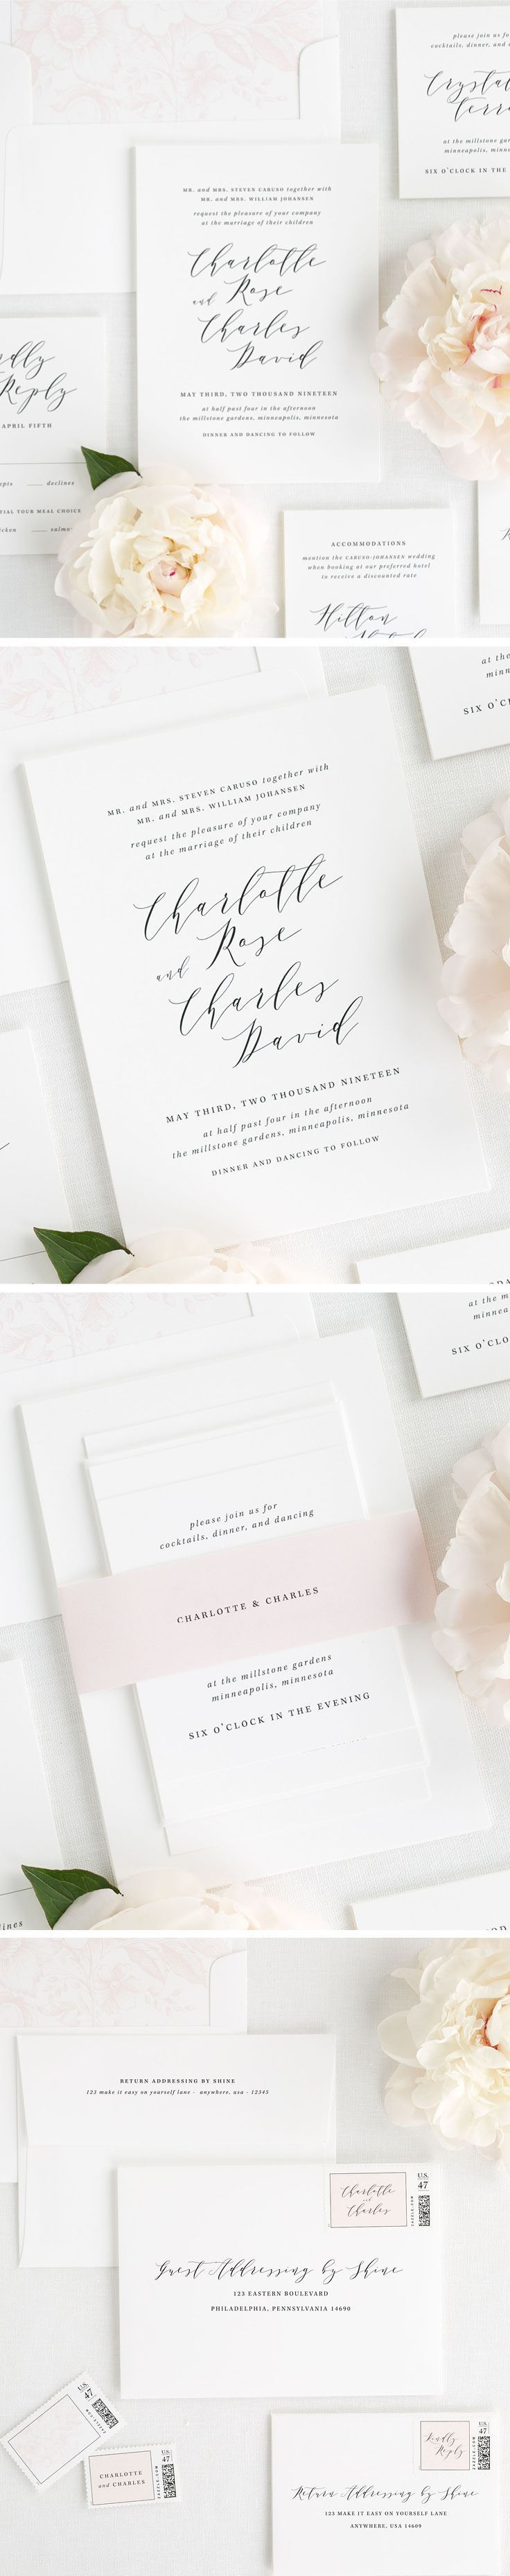 25 best Wedding Invitations images on Pinterest | Wedding stationery ...